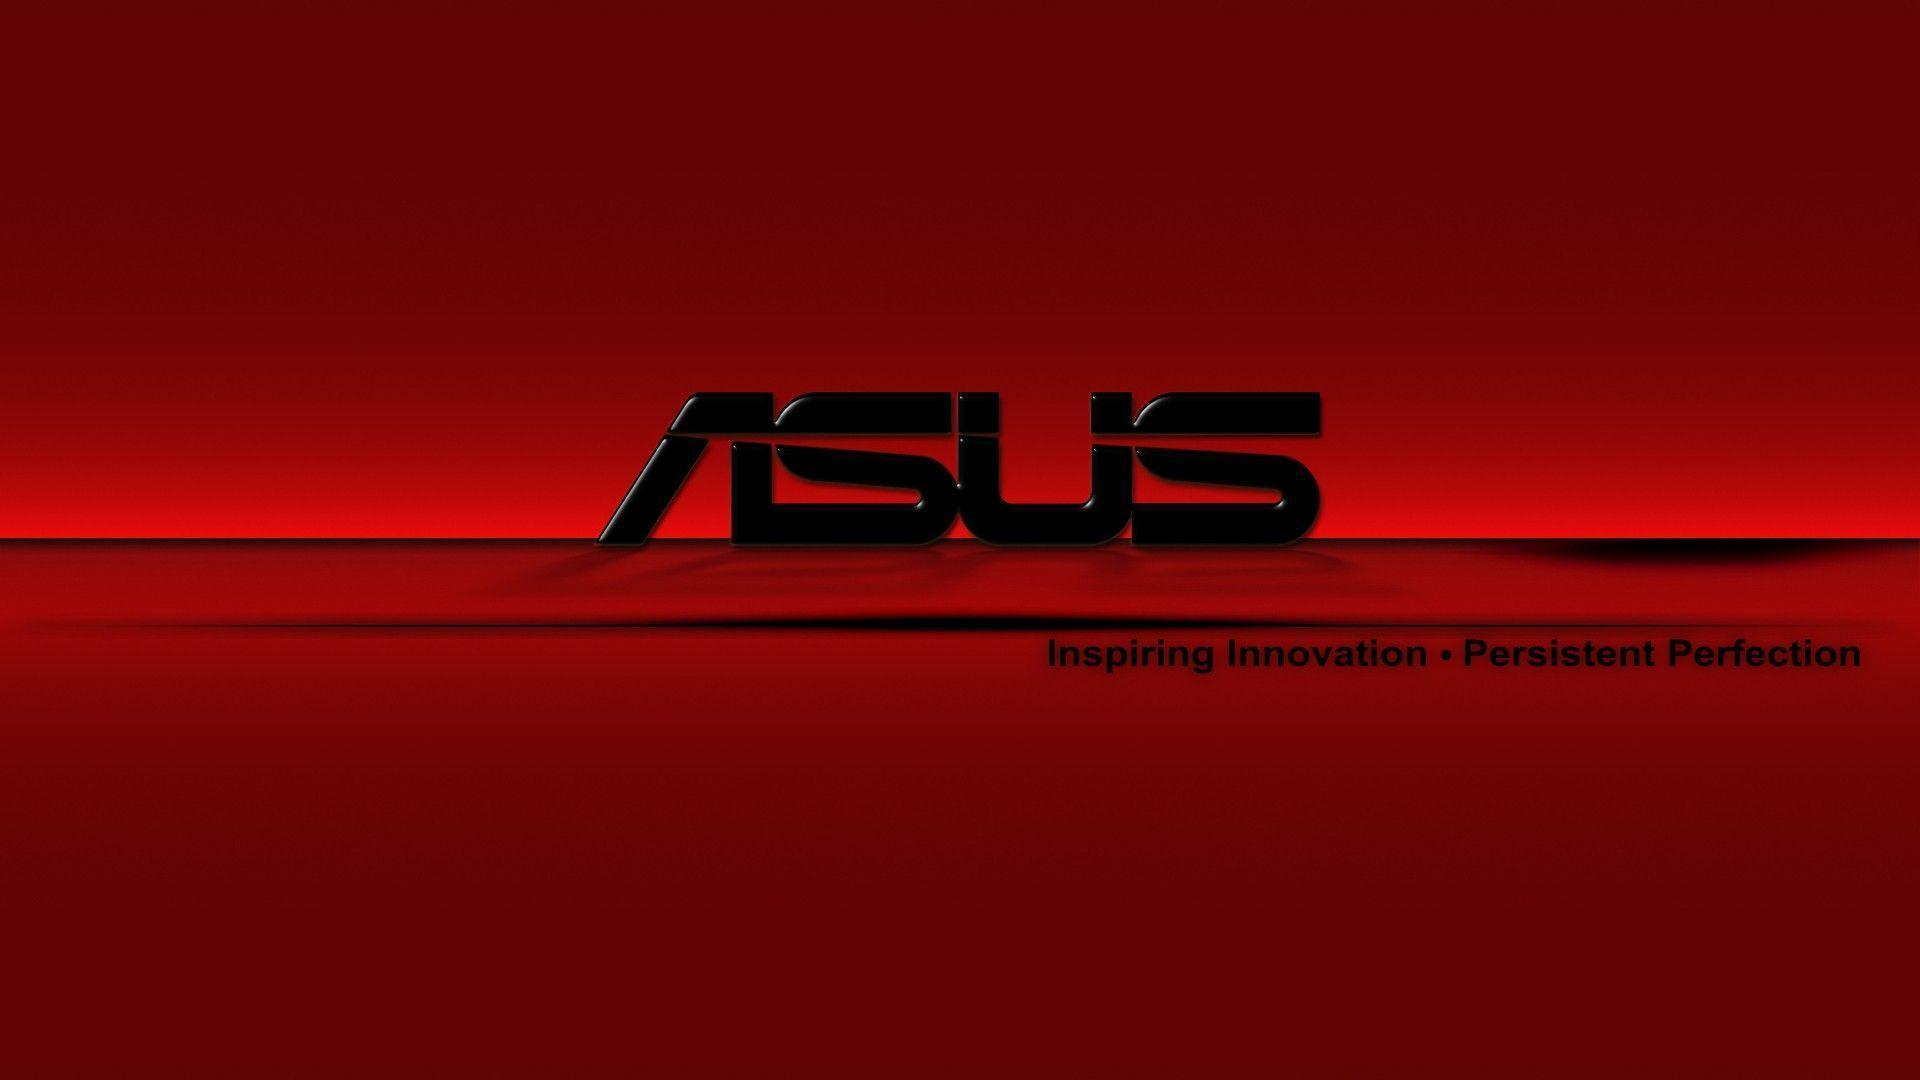 asus wallpaper hd related - photo #1